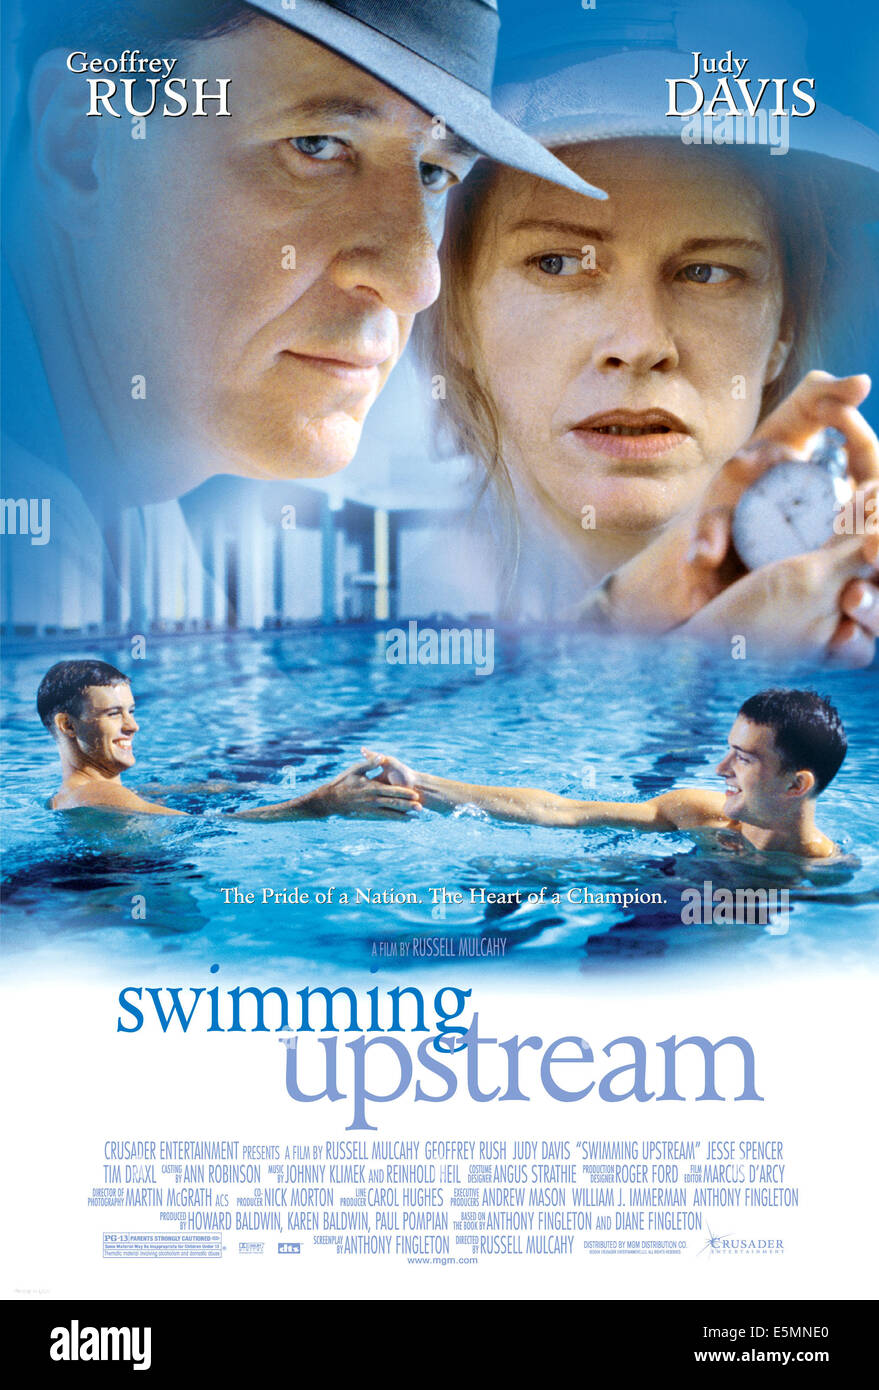 SWIMMING UPSTREAM, Geoffrey Rush, Judy Davis, 2003, (c) MGM/courtesy Everett Collection - Stock Image